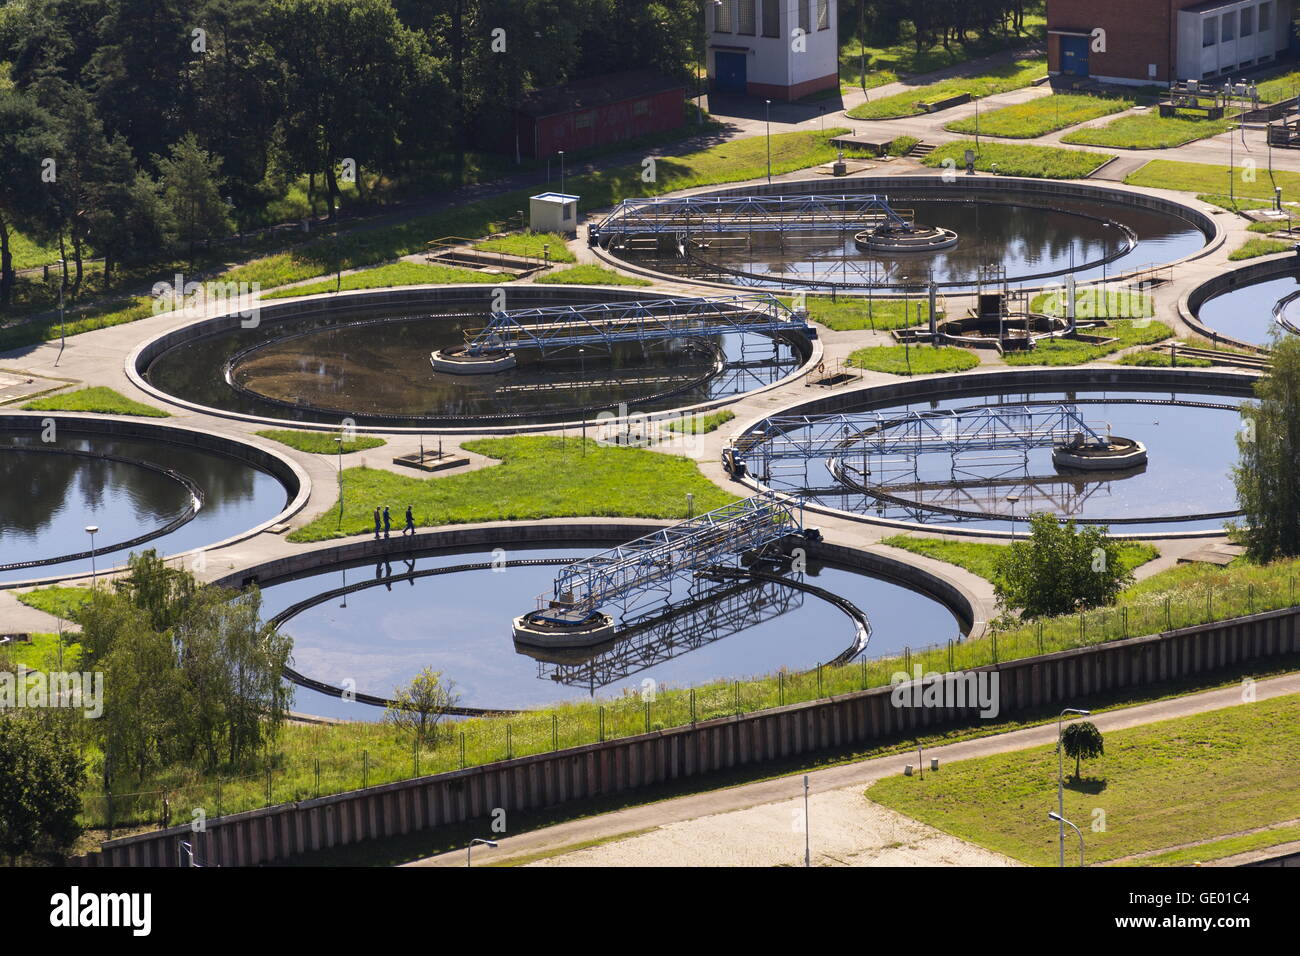 Aerial View Of Storage Tanks In Sewage Water Treatment Plant Stock Photo Alamy